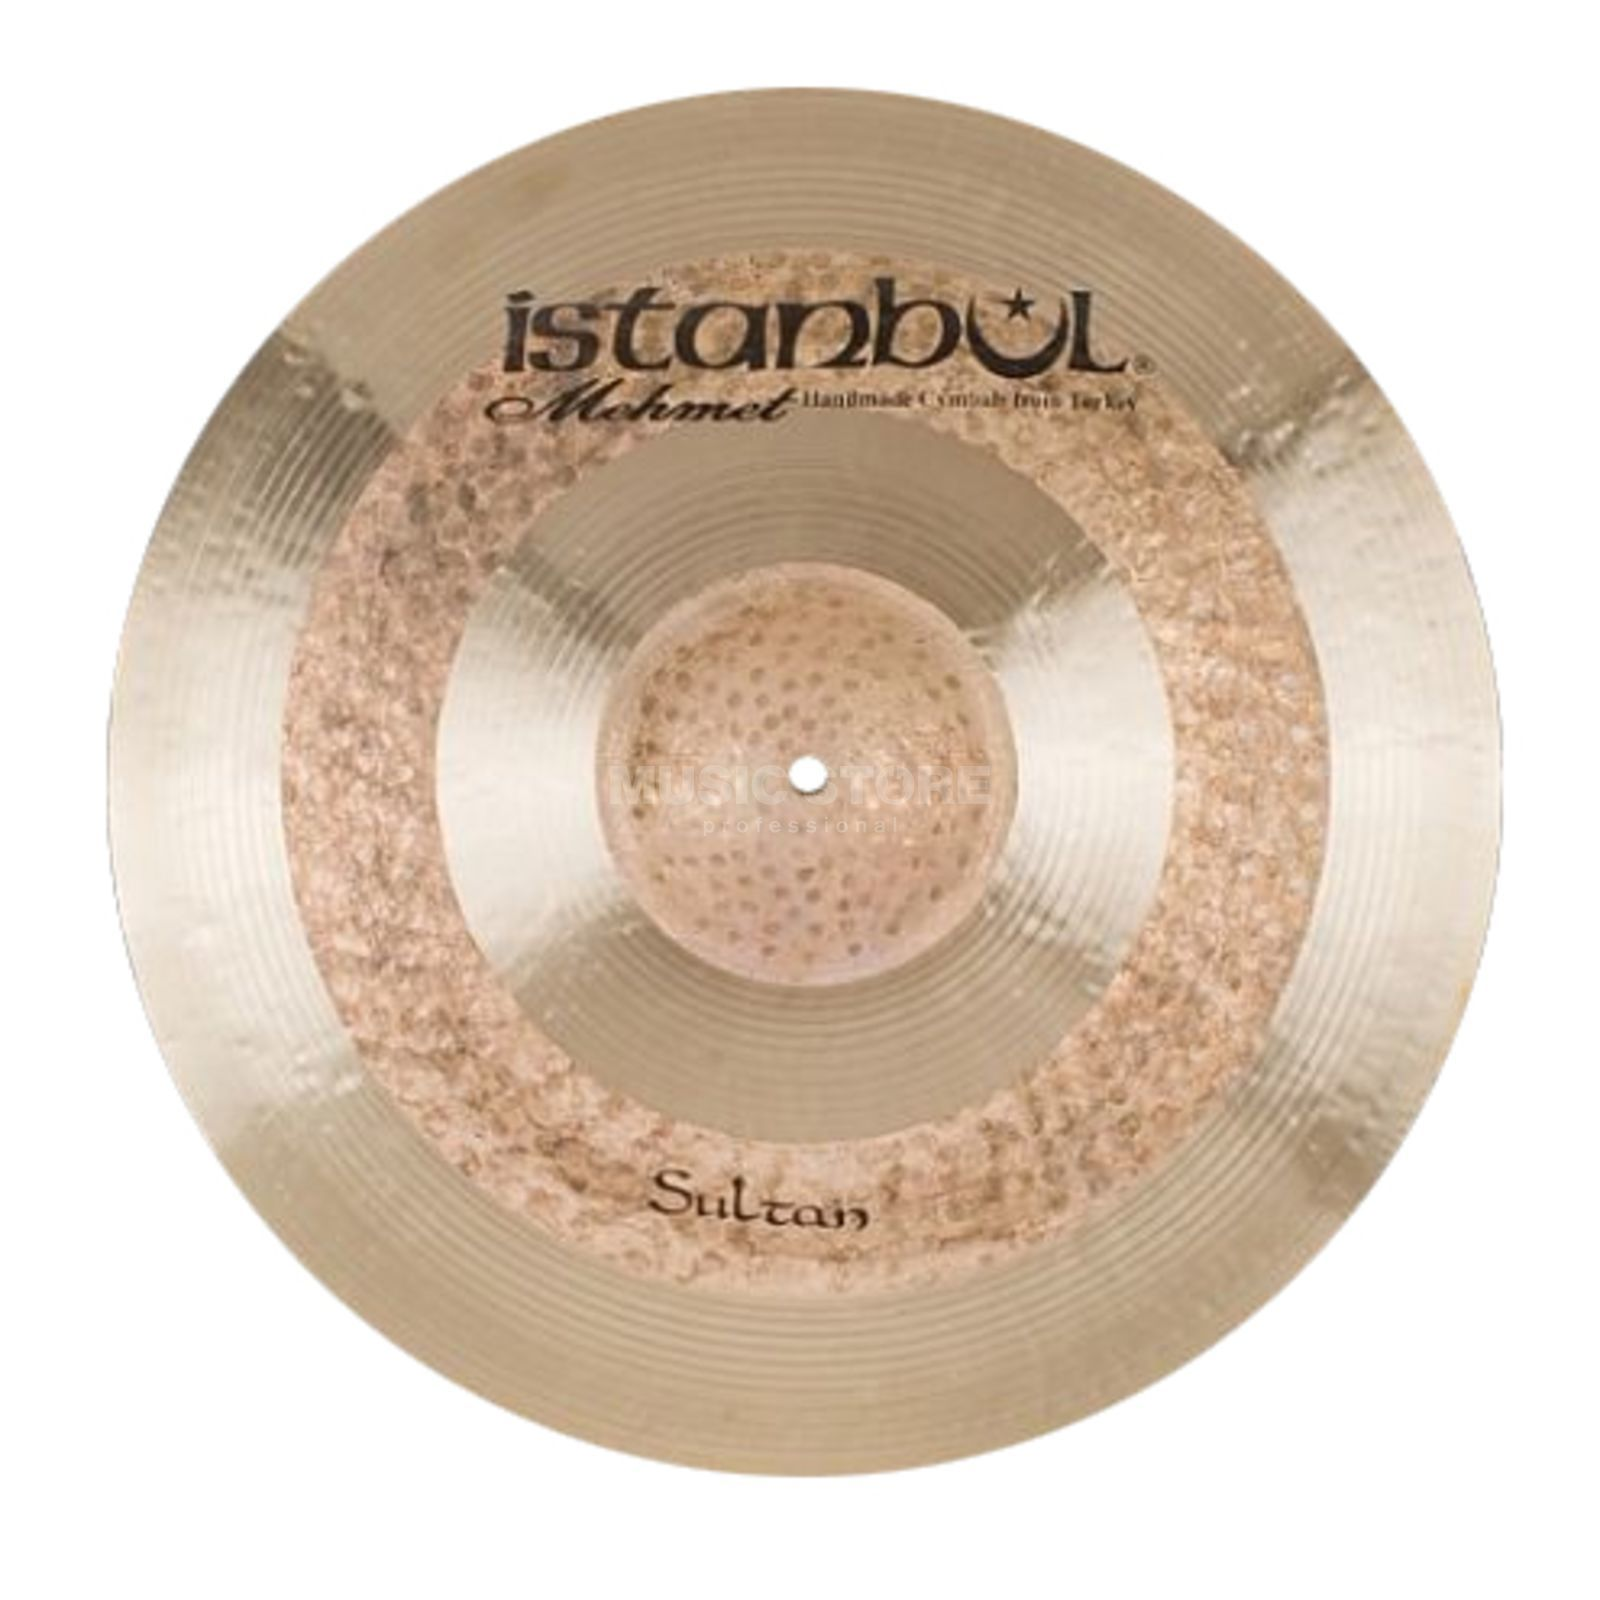 "Istanbul Sultan Thin Crash 14"", CTS15 Produktbillede"